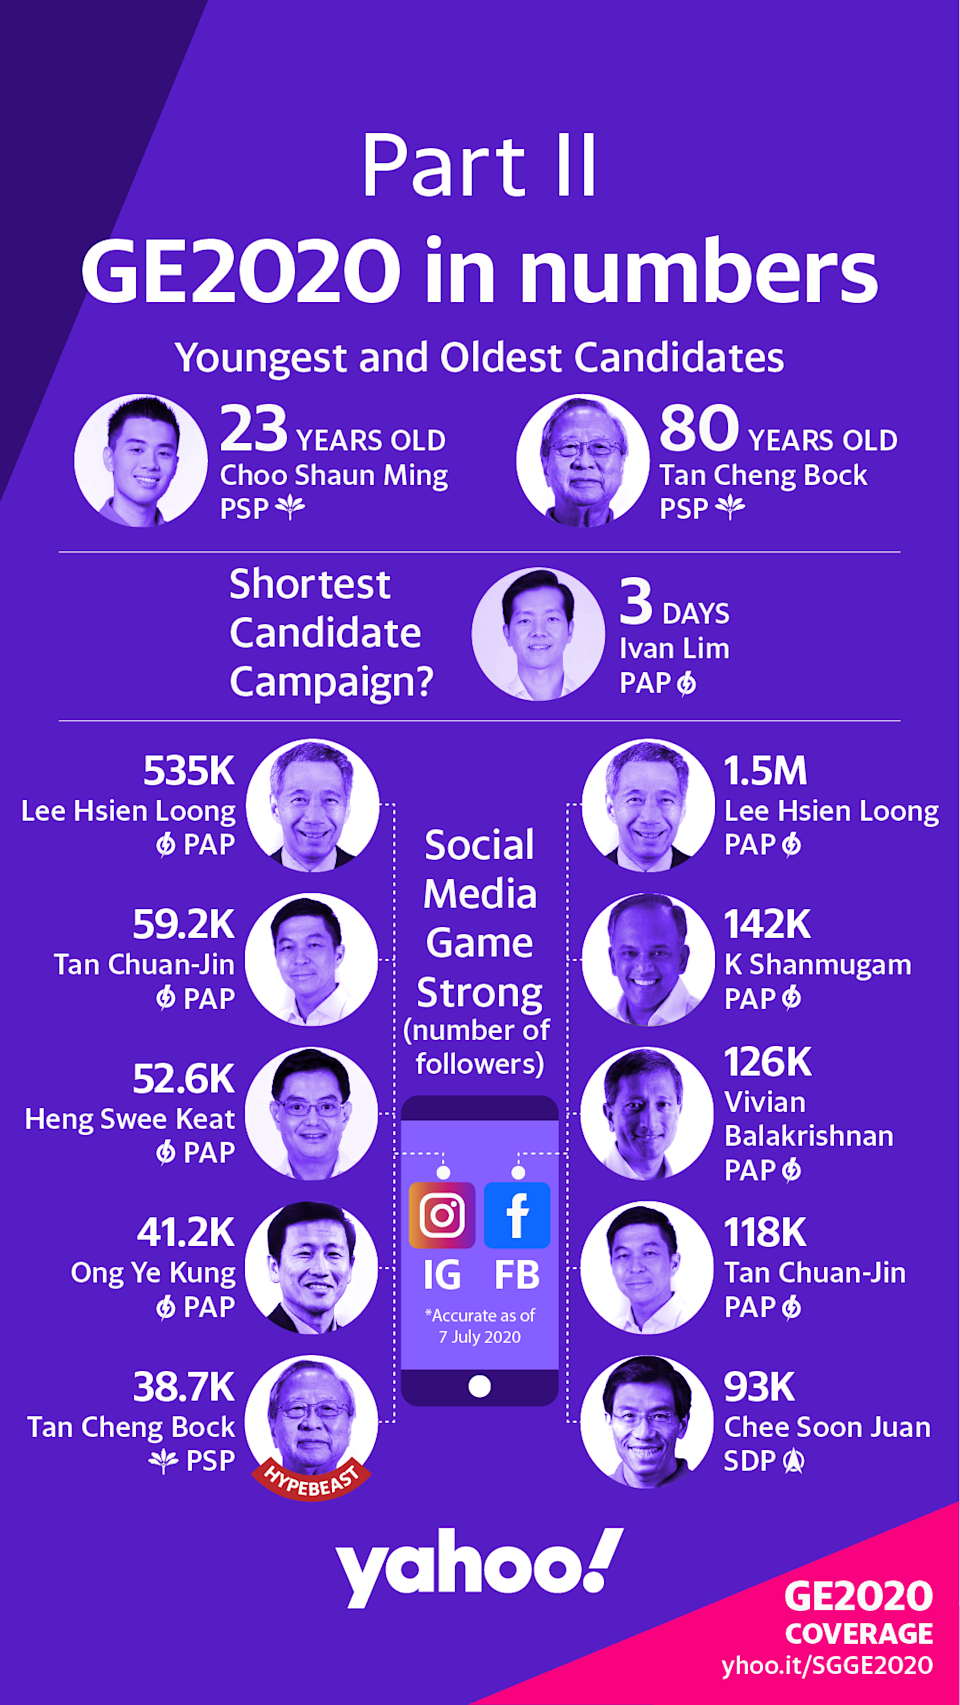 Singapore GE2020 in numbers